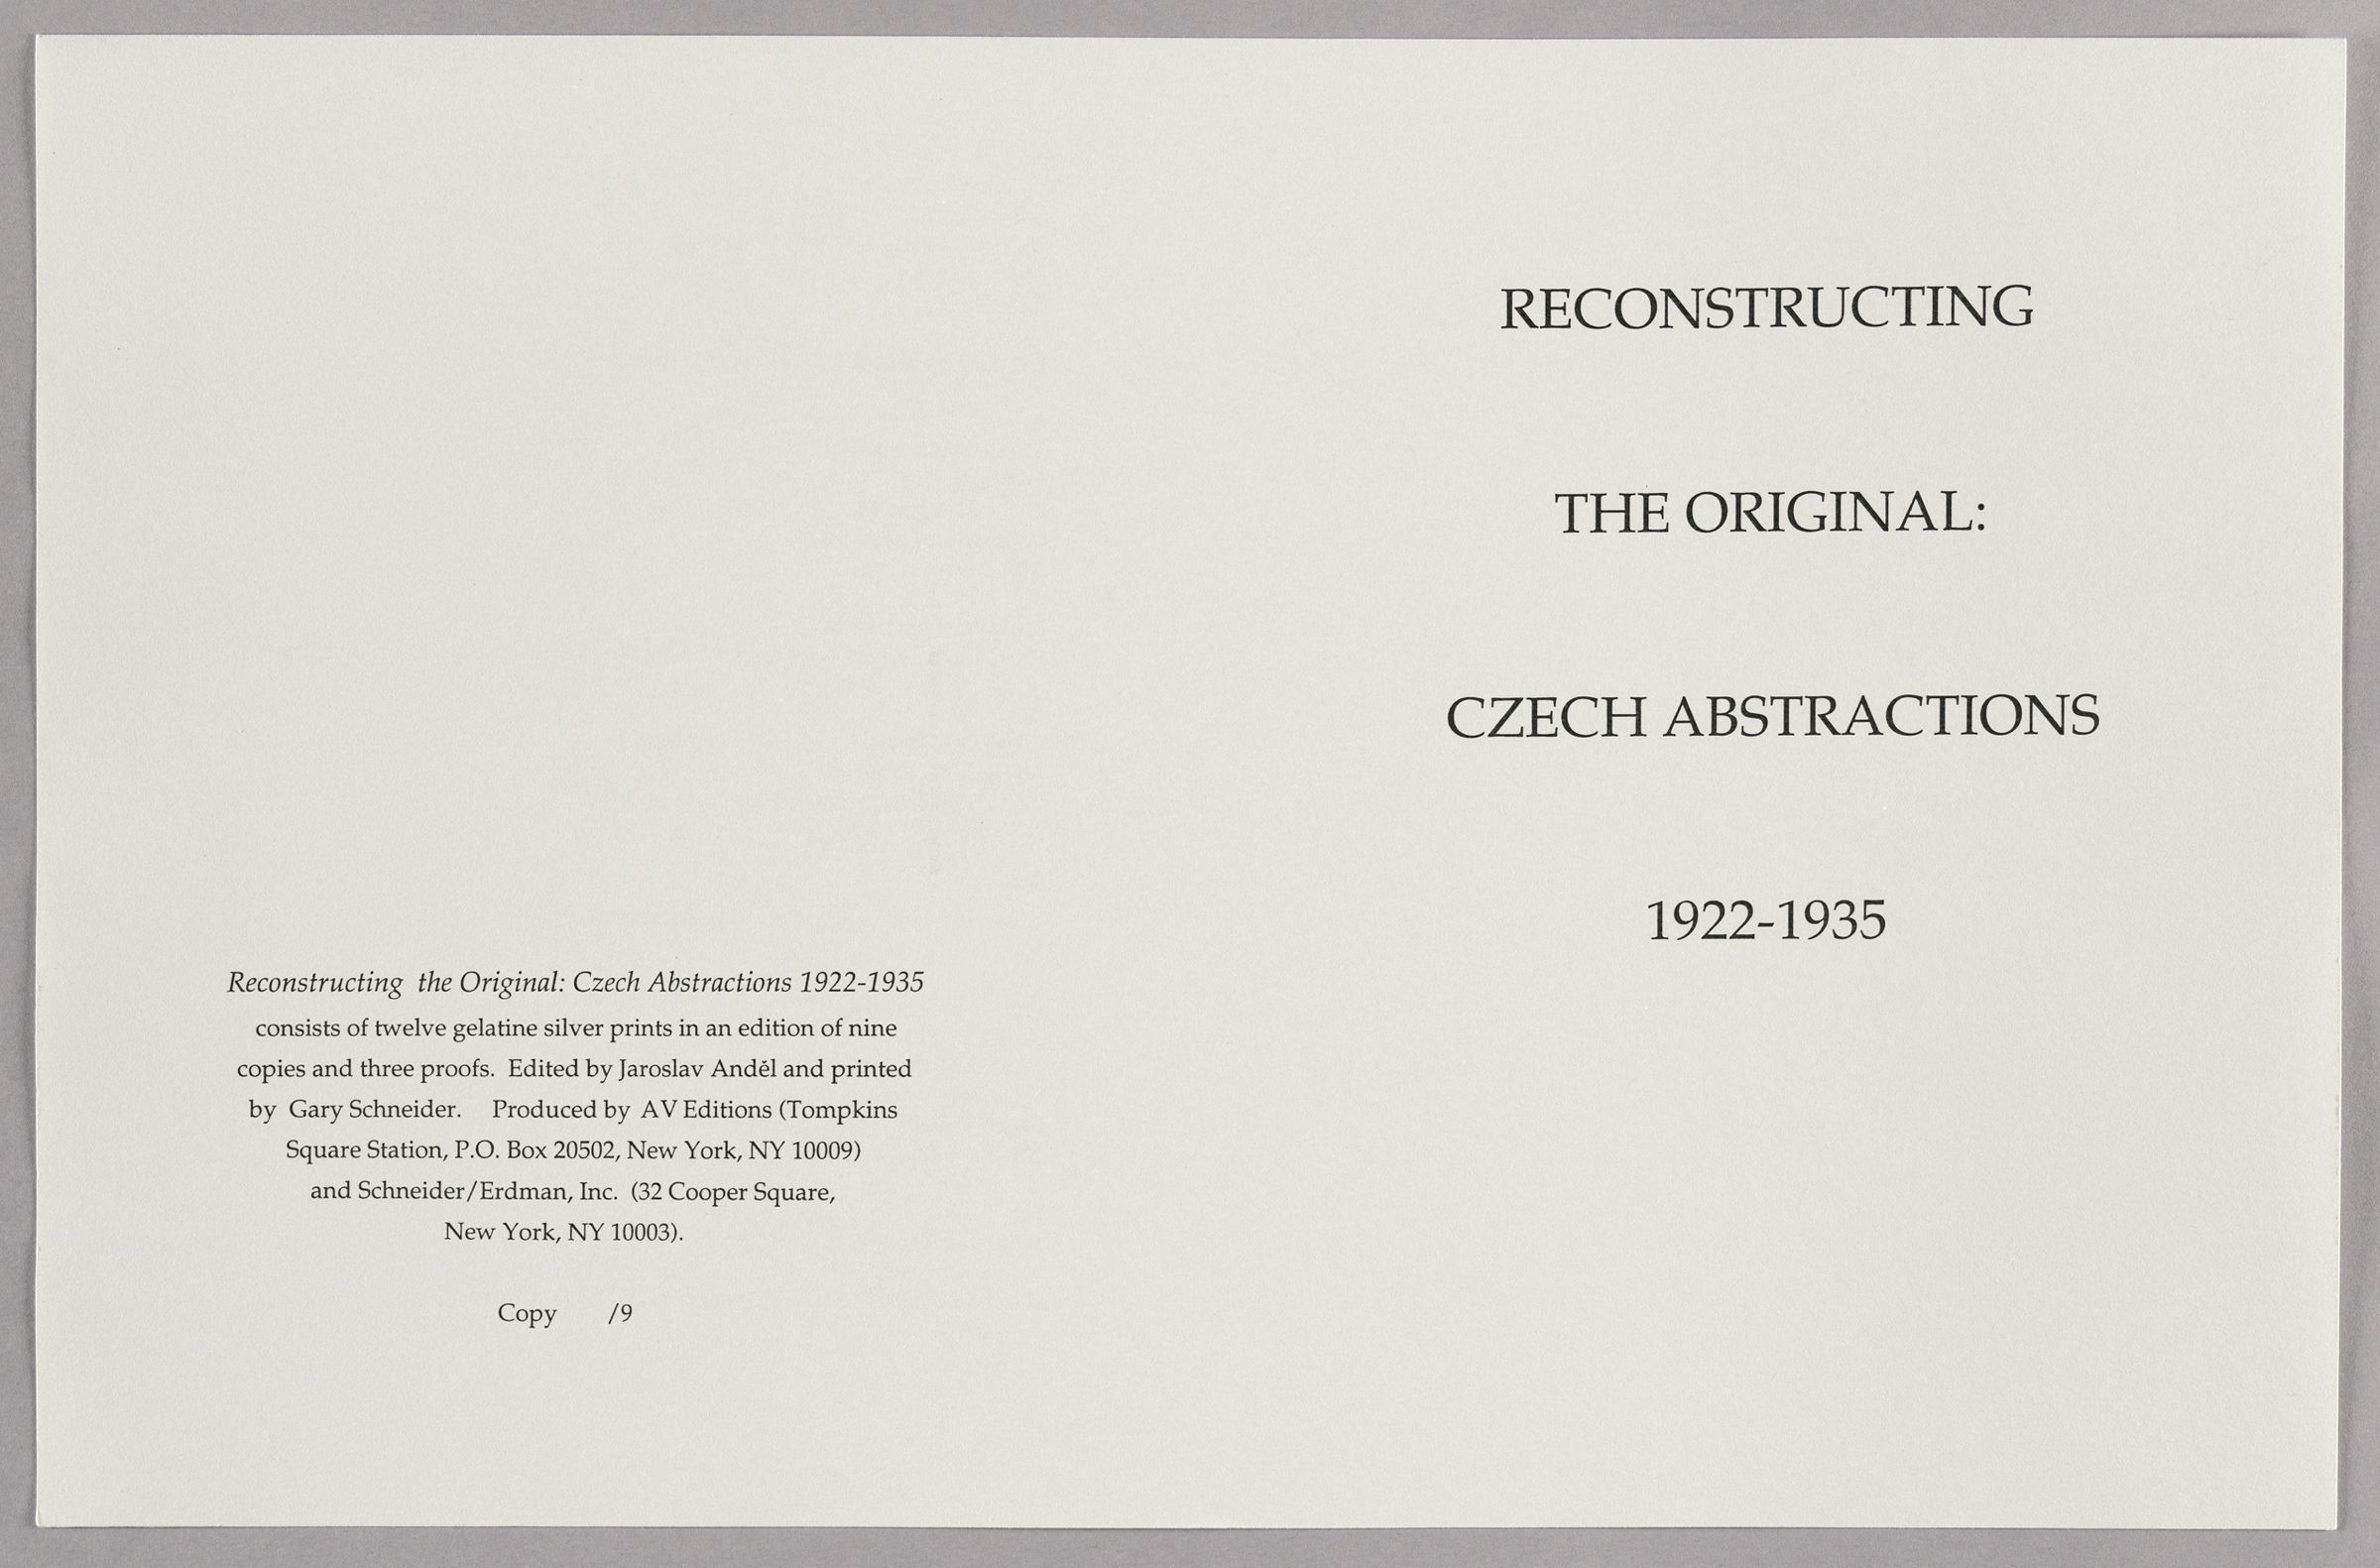 Reconstructing The Original: Czech Abstractions 1922-1935